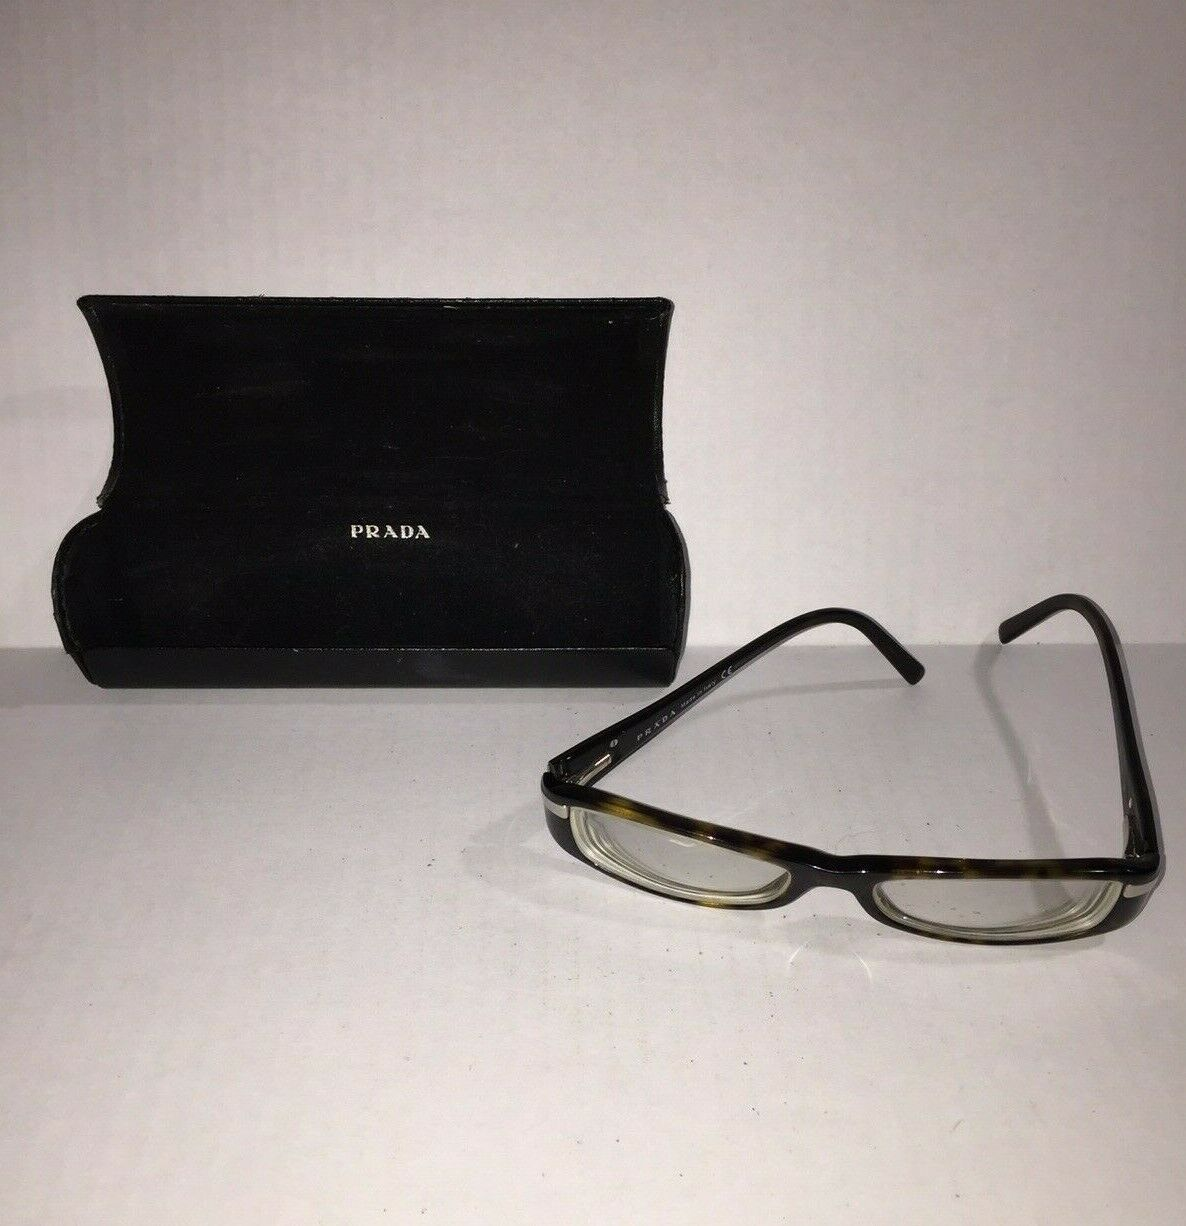 Prada Prescription RX Glasses Italy Black Frame Case Box Use For Frame Vintage